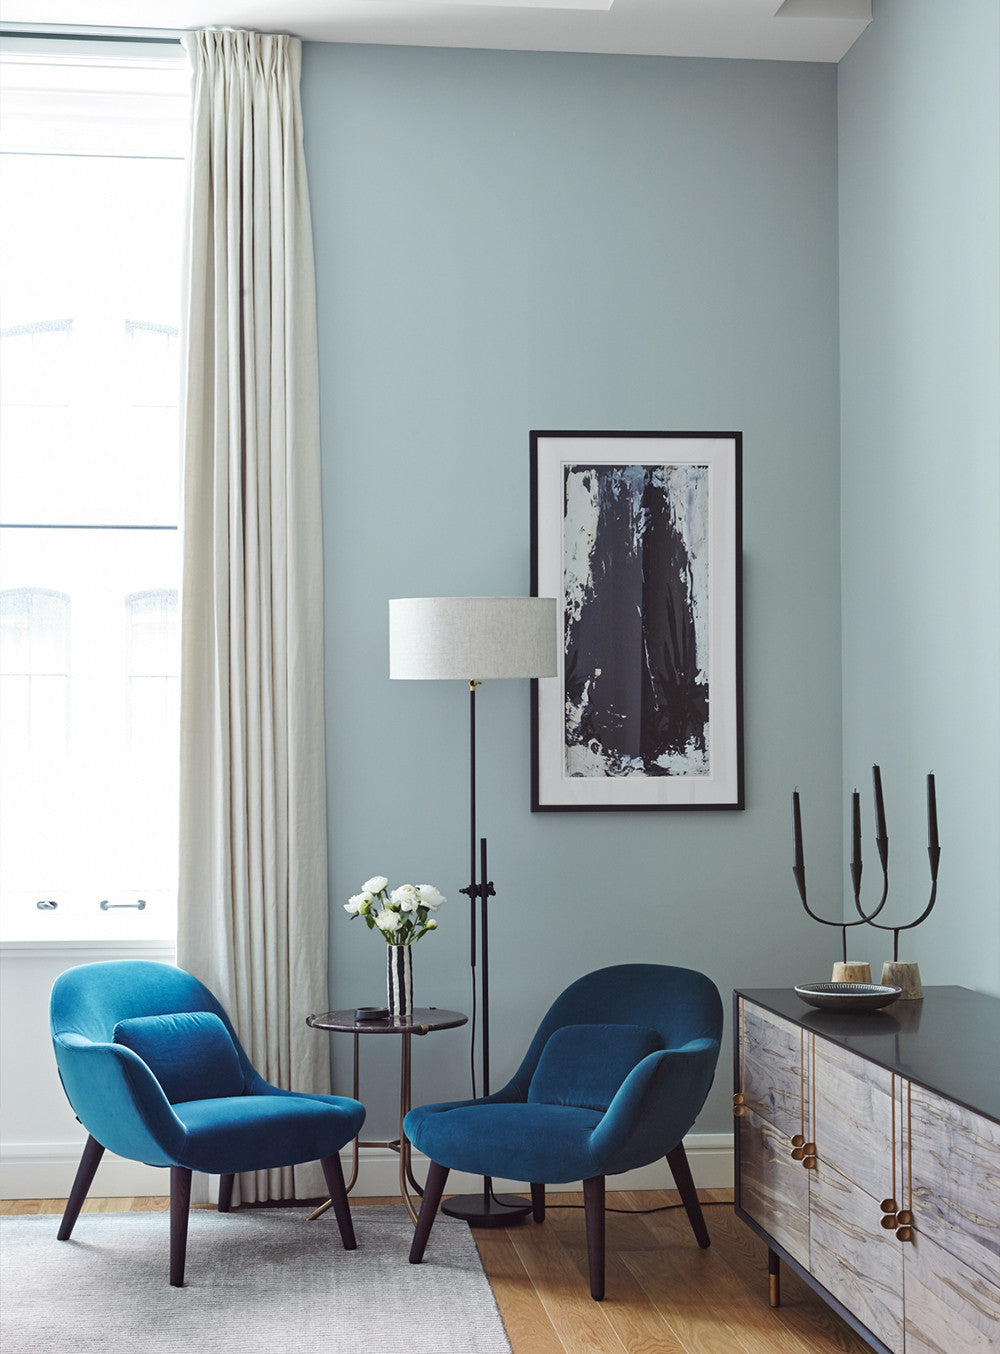 Black & blue has never looked so chic.